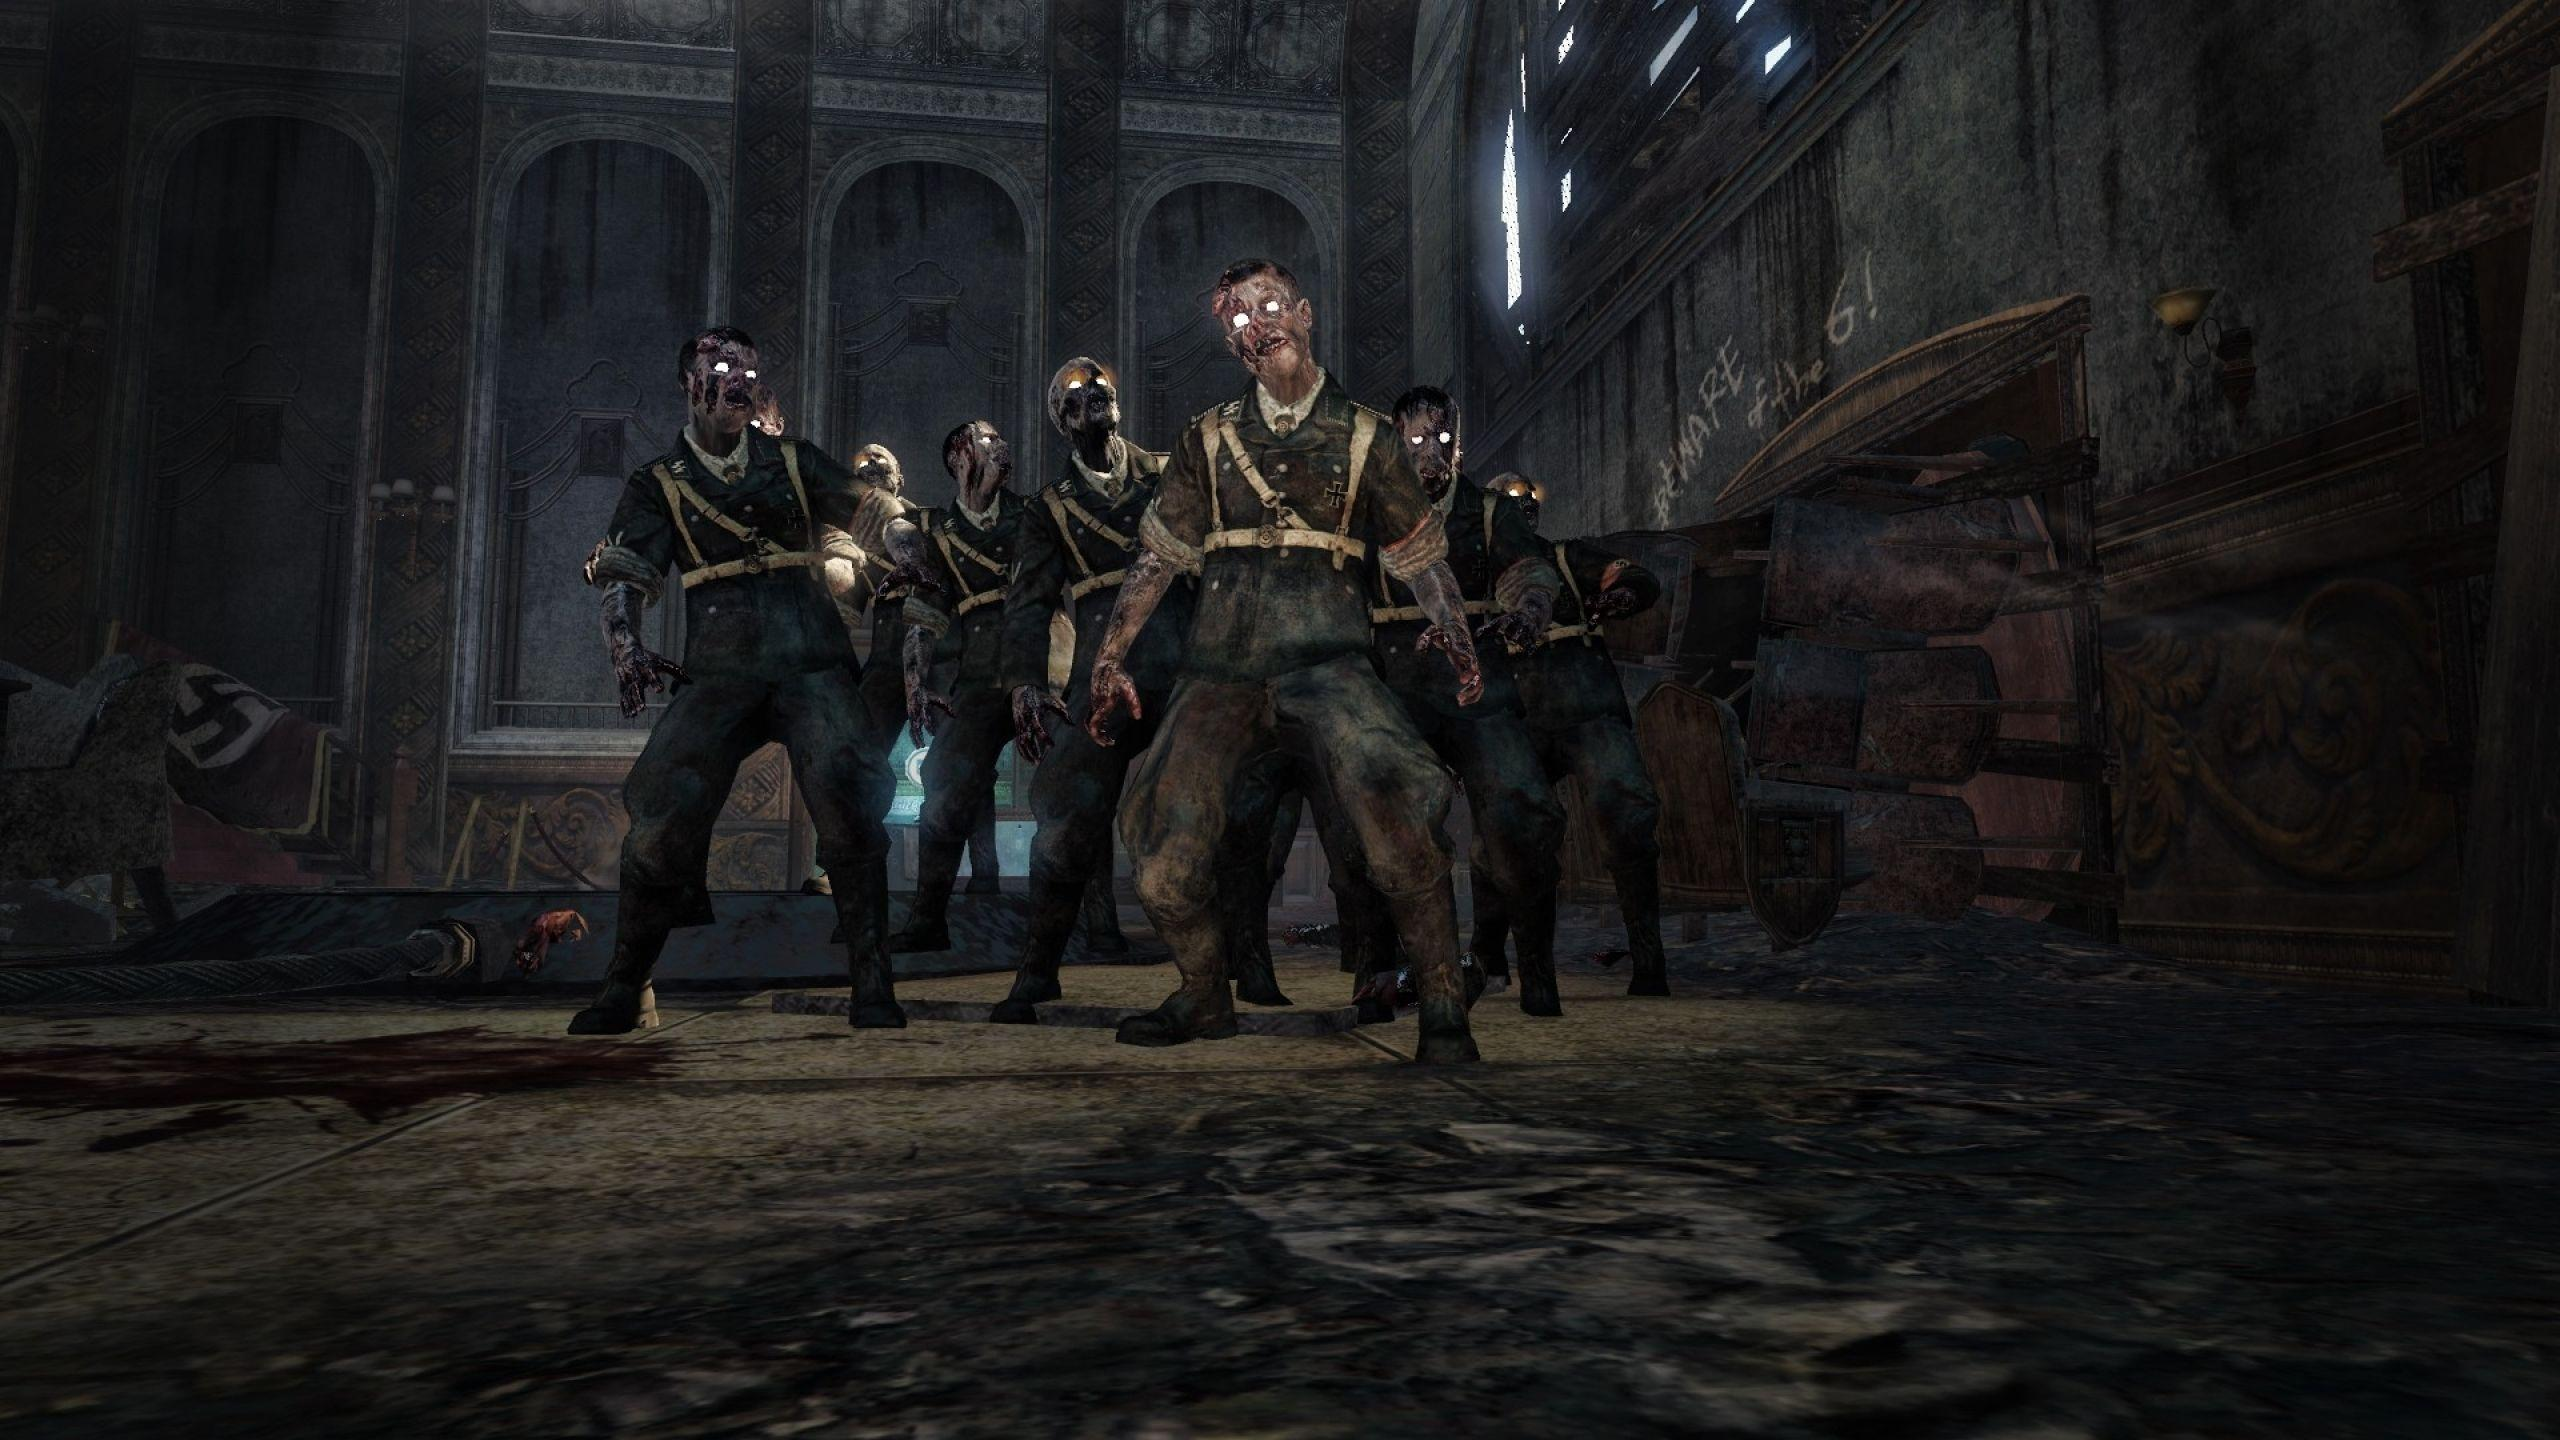 Call Of Duty Ww2 Zombies Wallpaper: Call Of Duty WW2 Zombies Wallpapers